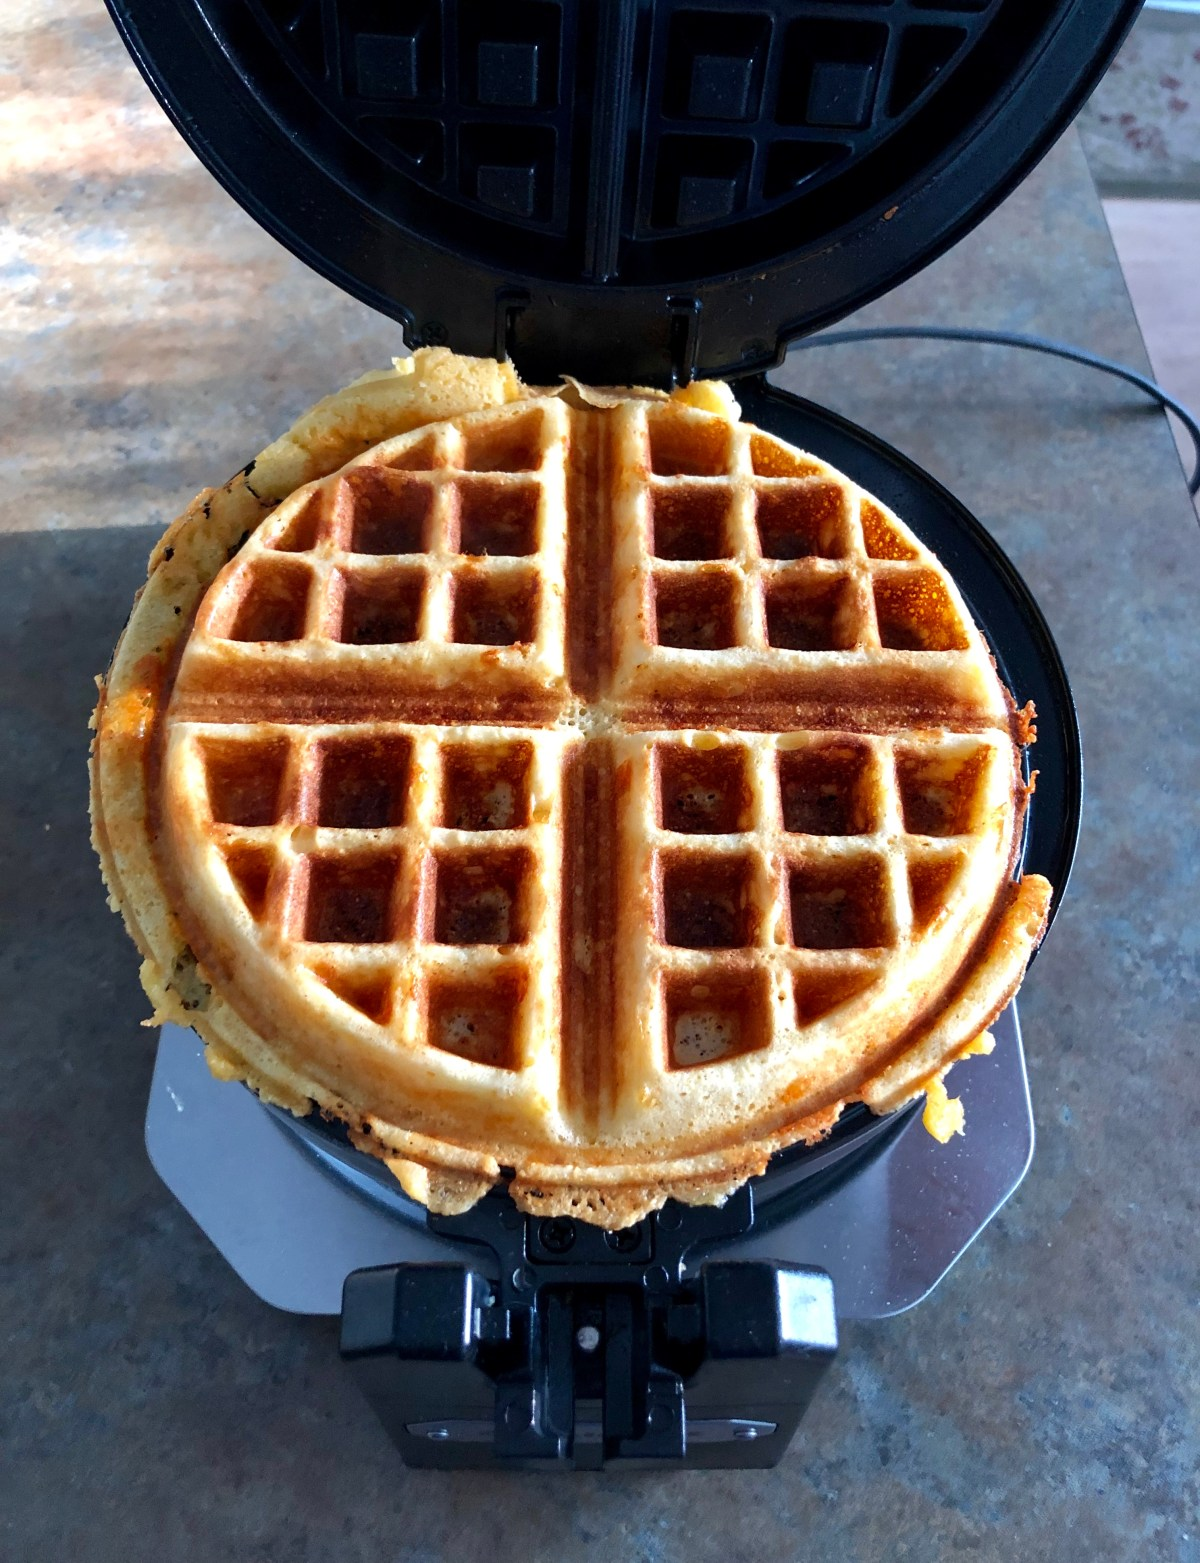 Freshly cooked waffle sitting in a round waffle maker.